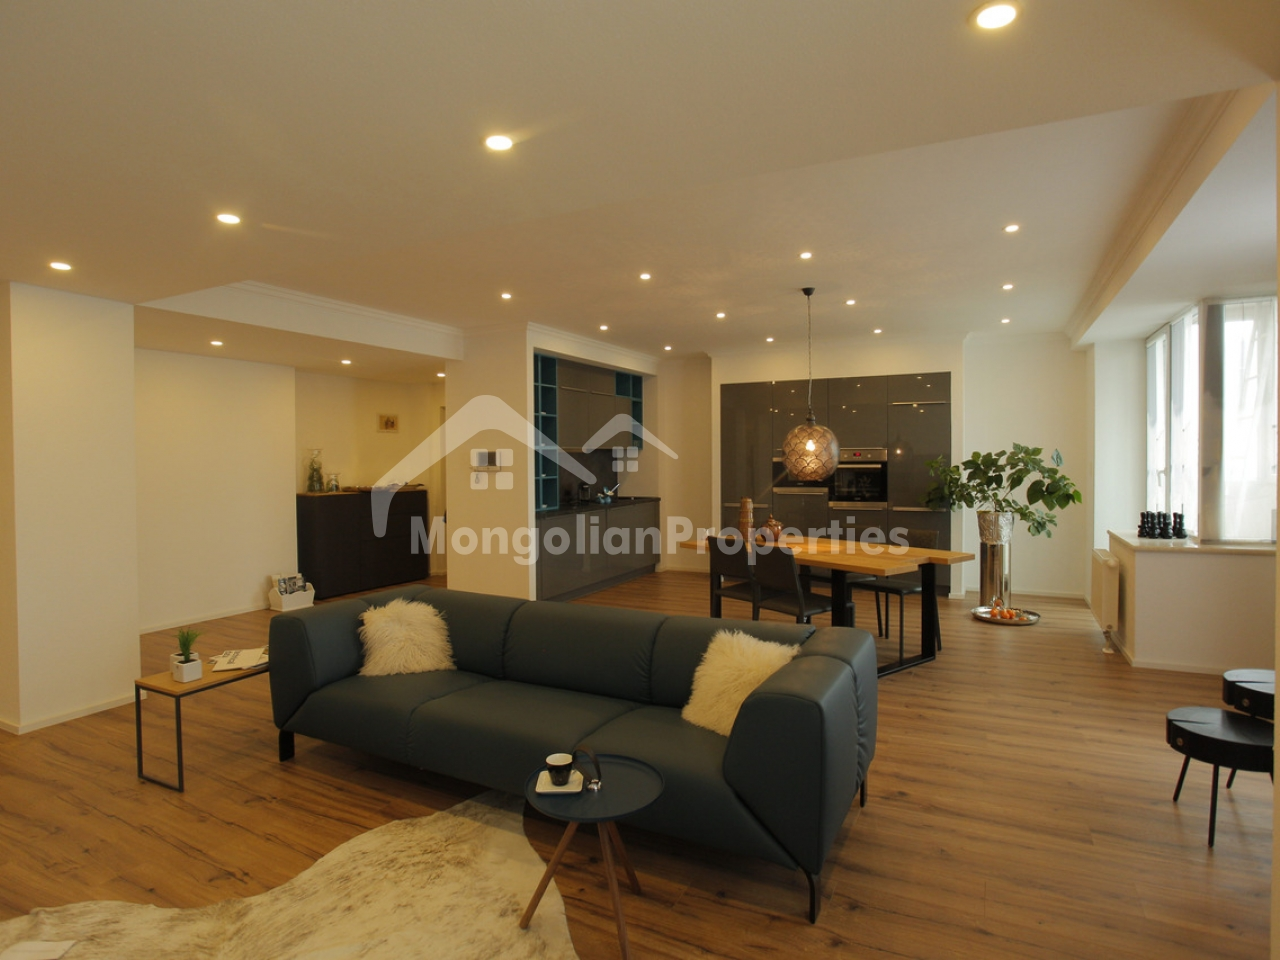 Modern, Newly Furnished 3 bedroom apartment for rent in Diplomat apartment